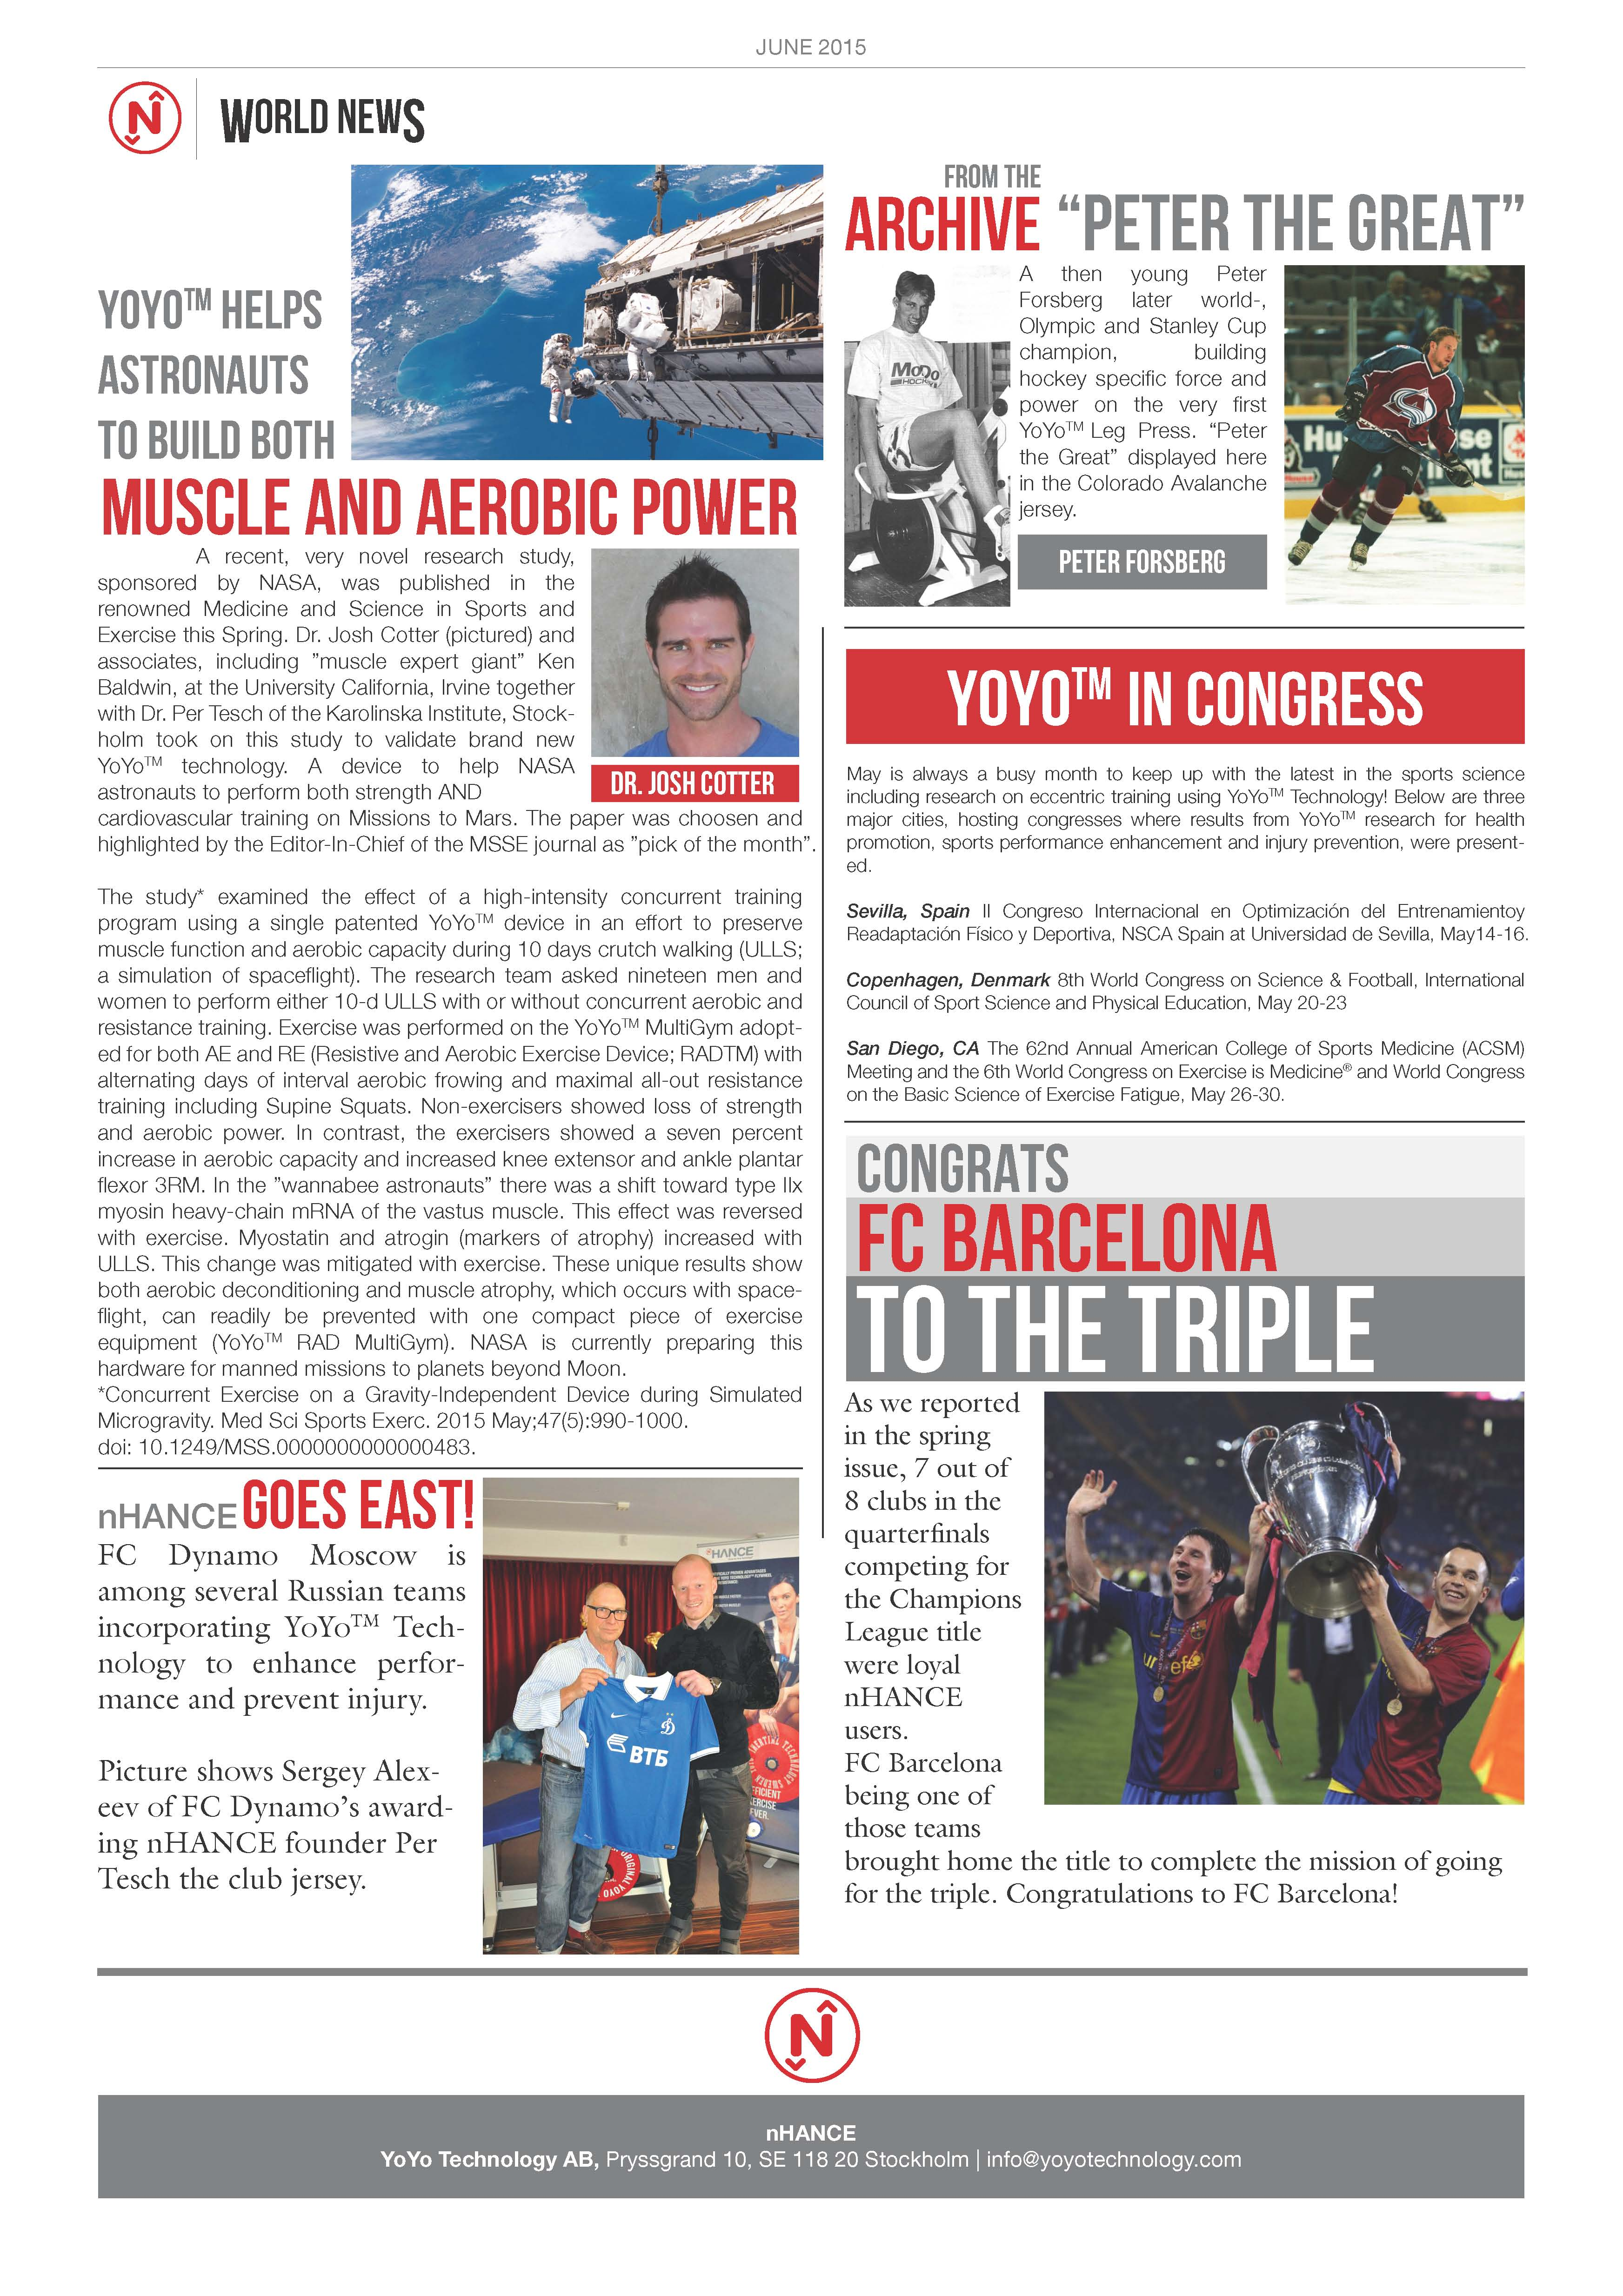 nHANCE Newsletter JUNE 2015_Page_2